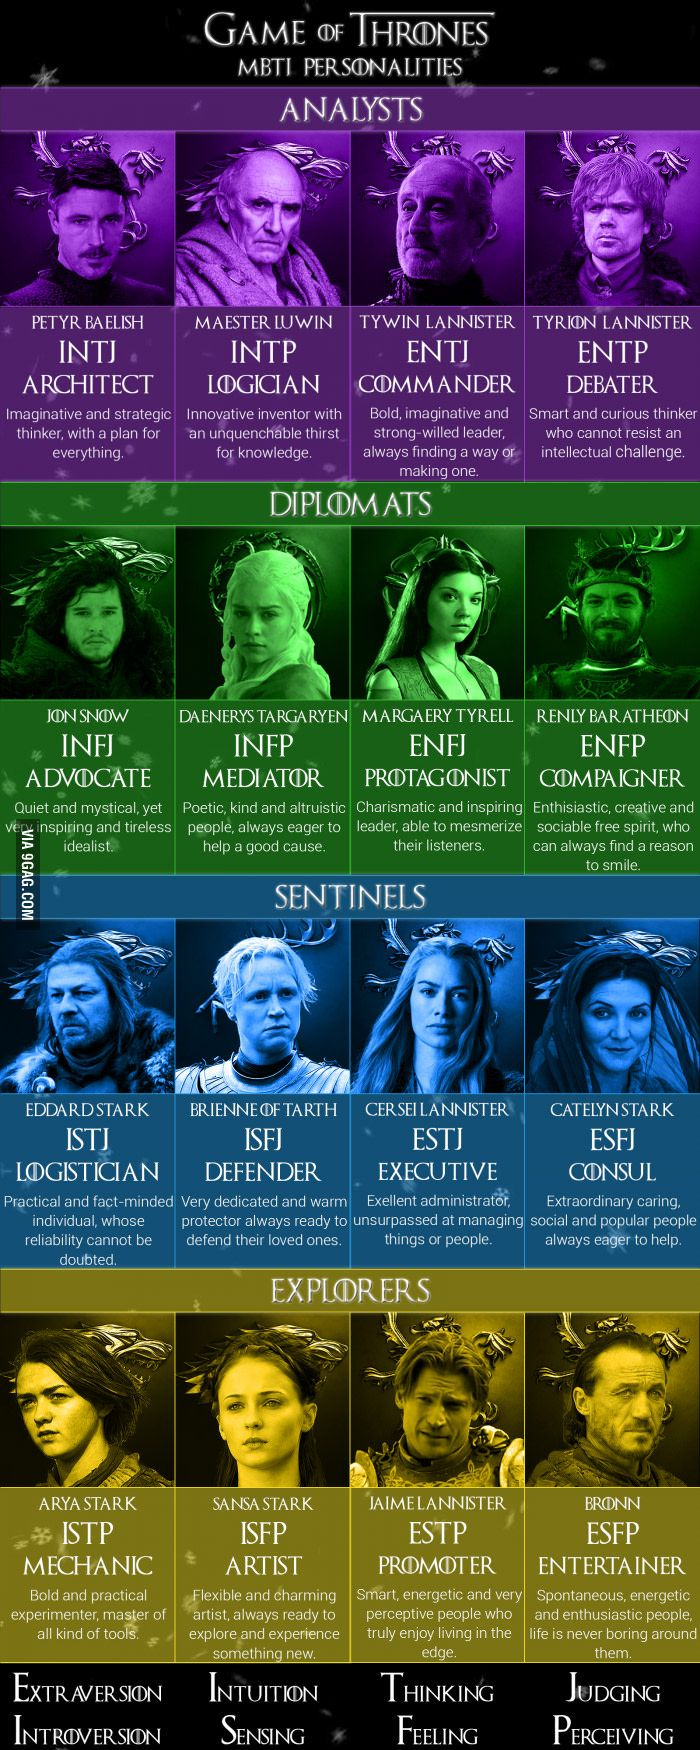 Game of thrones - MBTI personalities which character are you ?